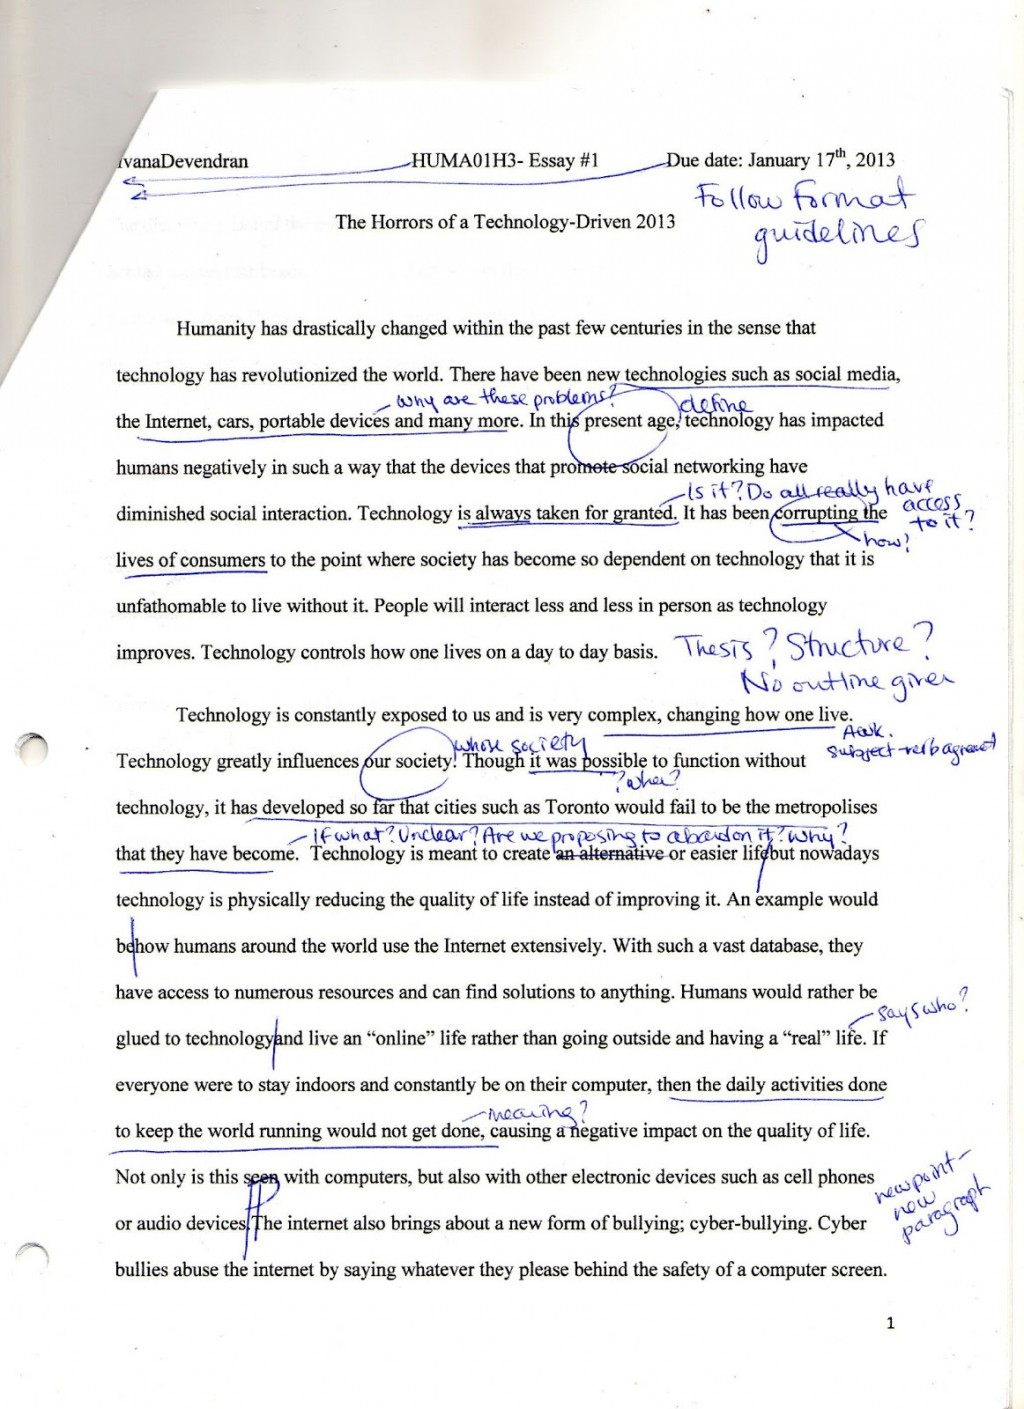 004 Essay Example Cyberbullying Cyber Bullying Argumentative Topics Free Professional Resume I Persuasive Beautiful Introduction Body Conclusion Outline Large